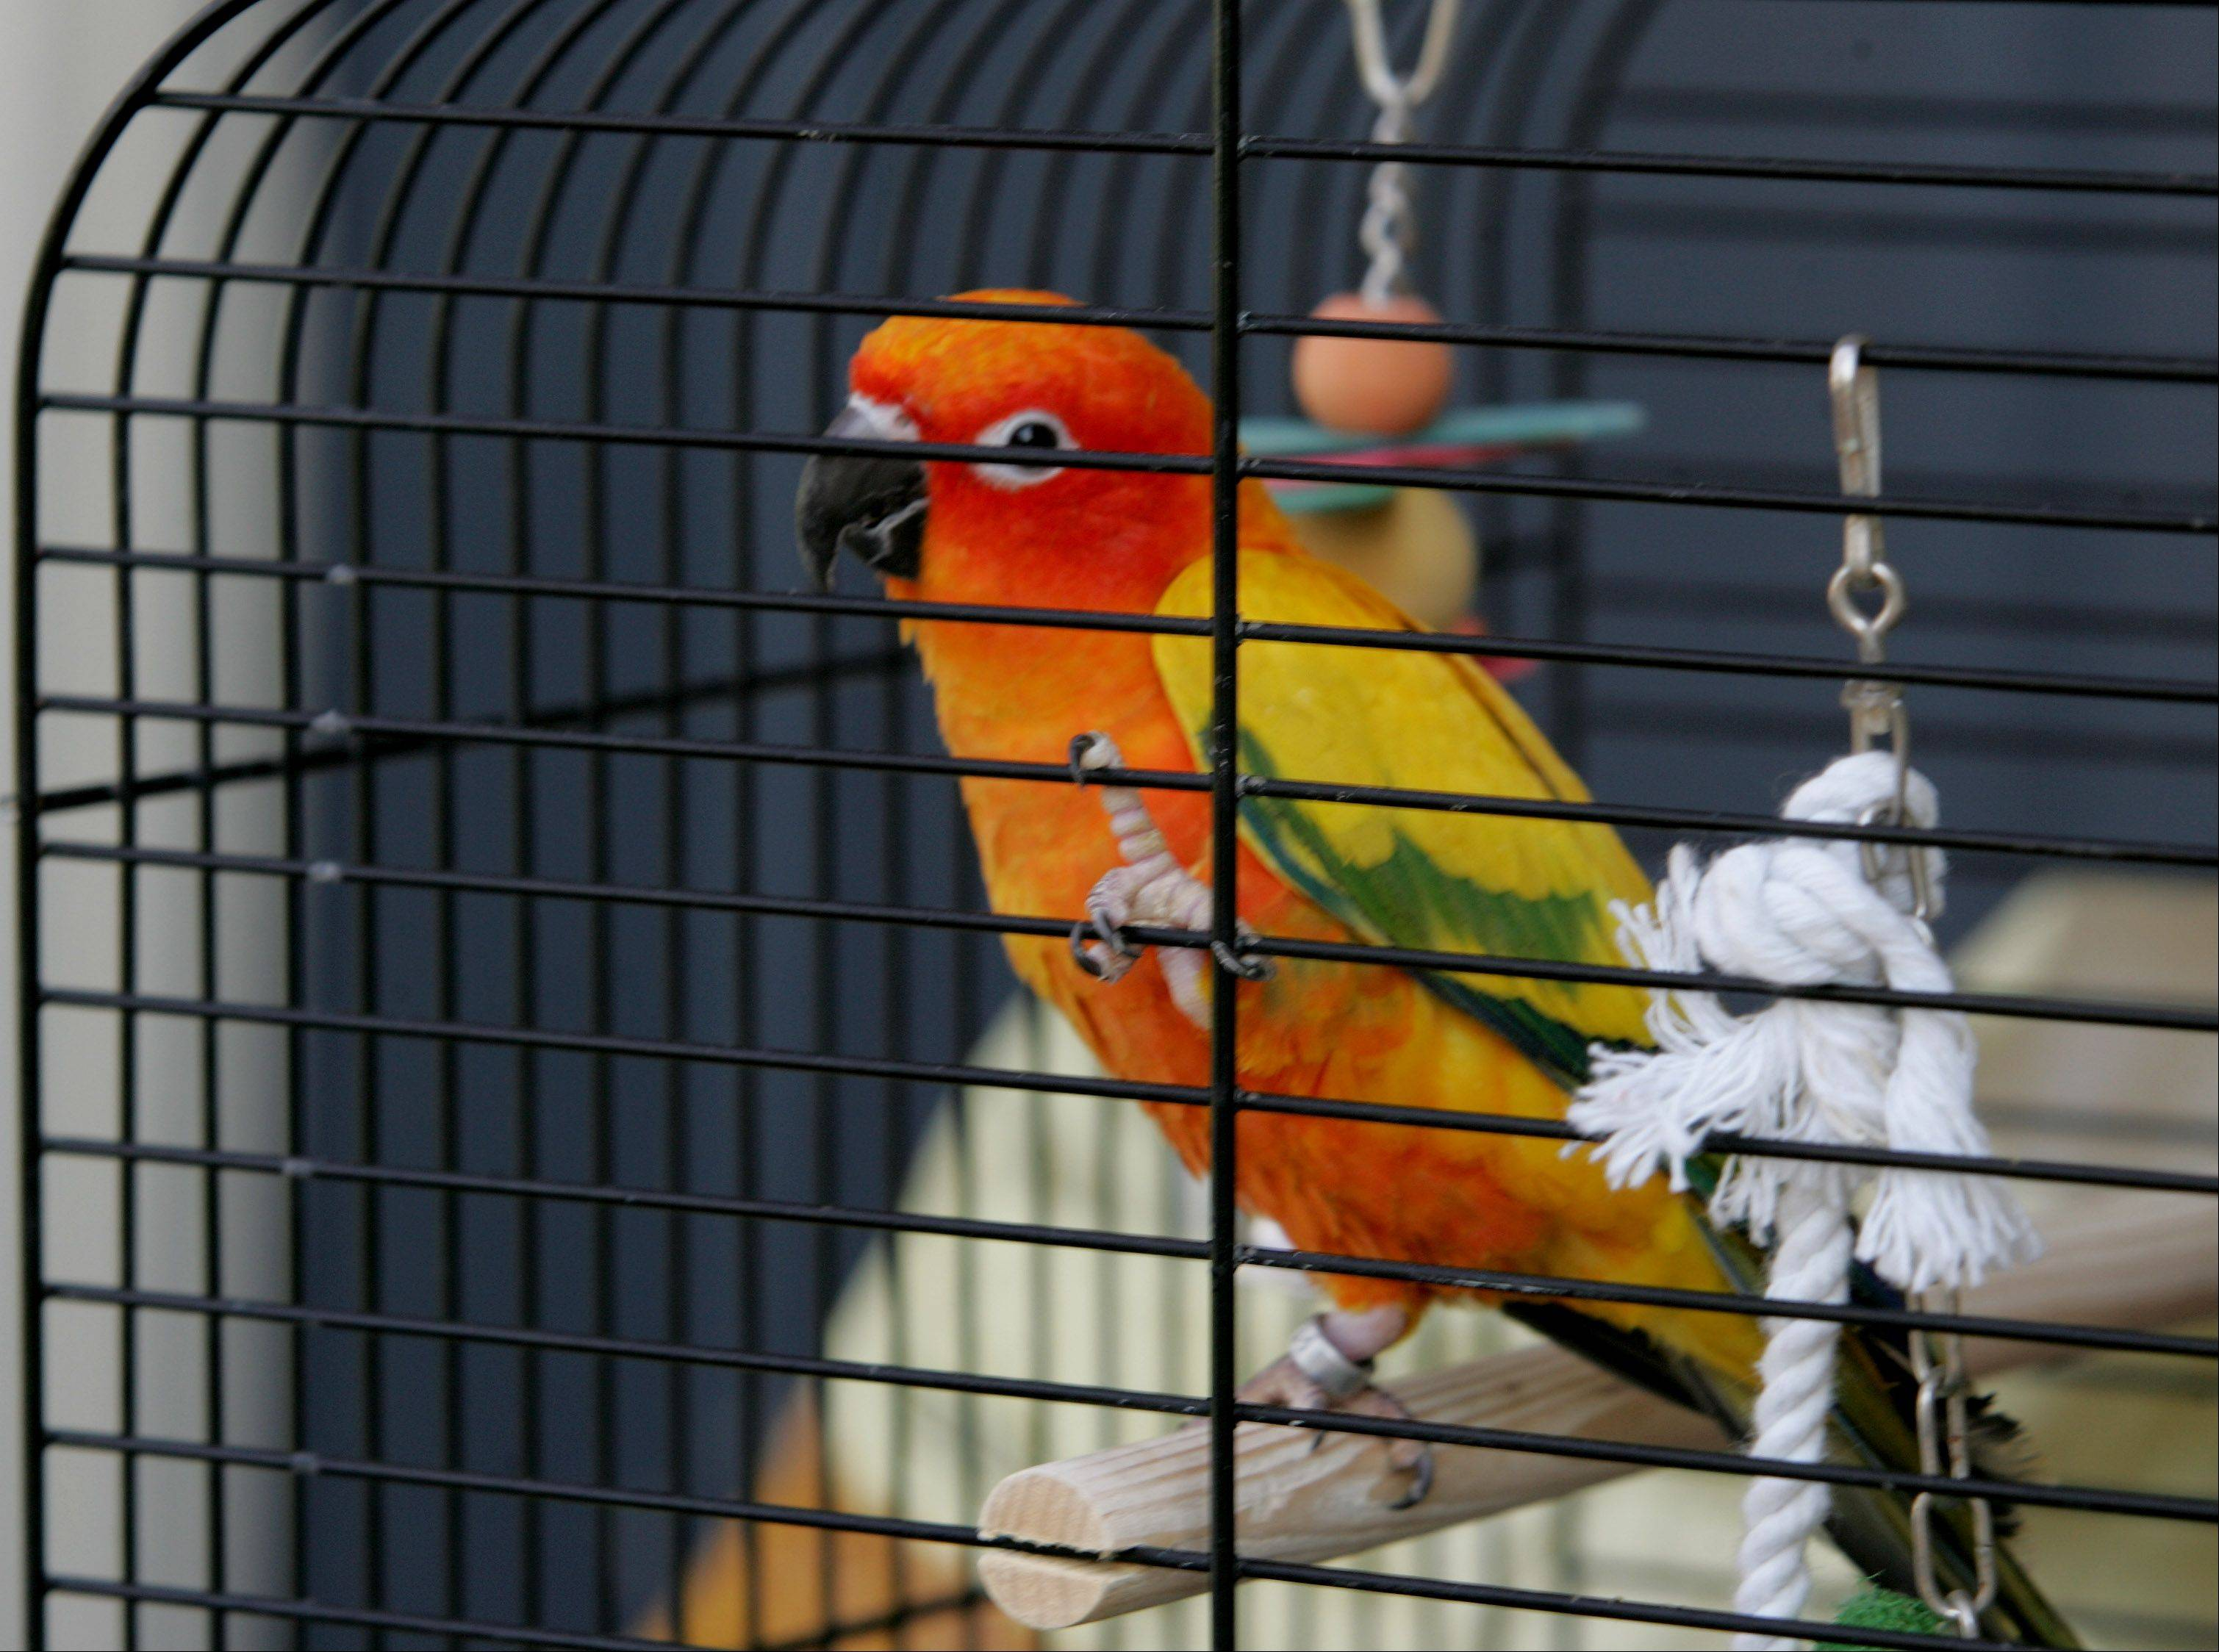 Sweetheart, a Sun Conure, is just one of the possibly 300 birds Dave Skeberdis had in his Aurora townhouse.